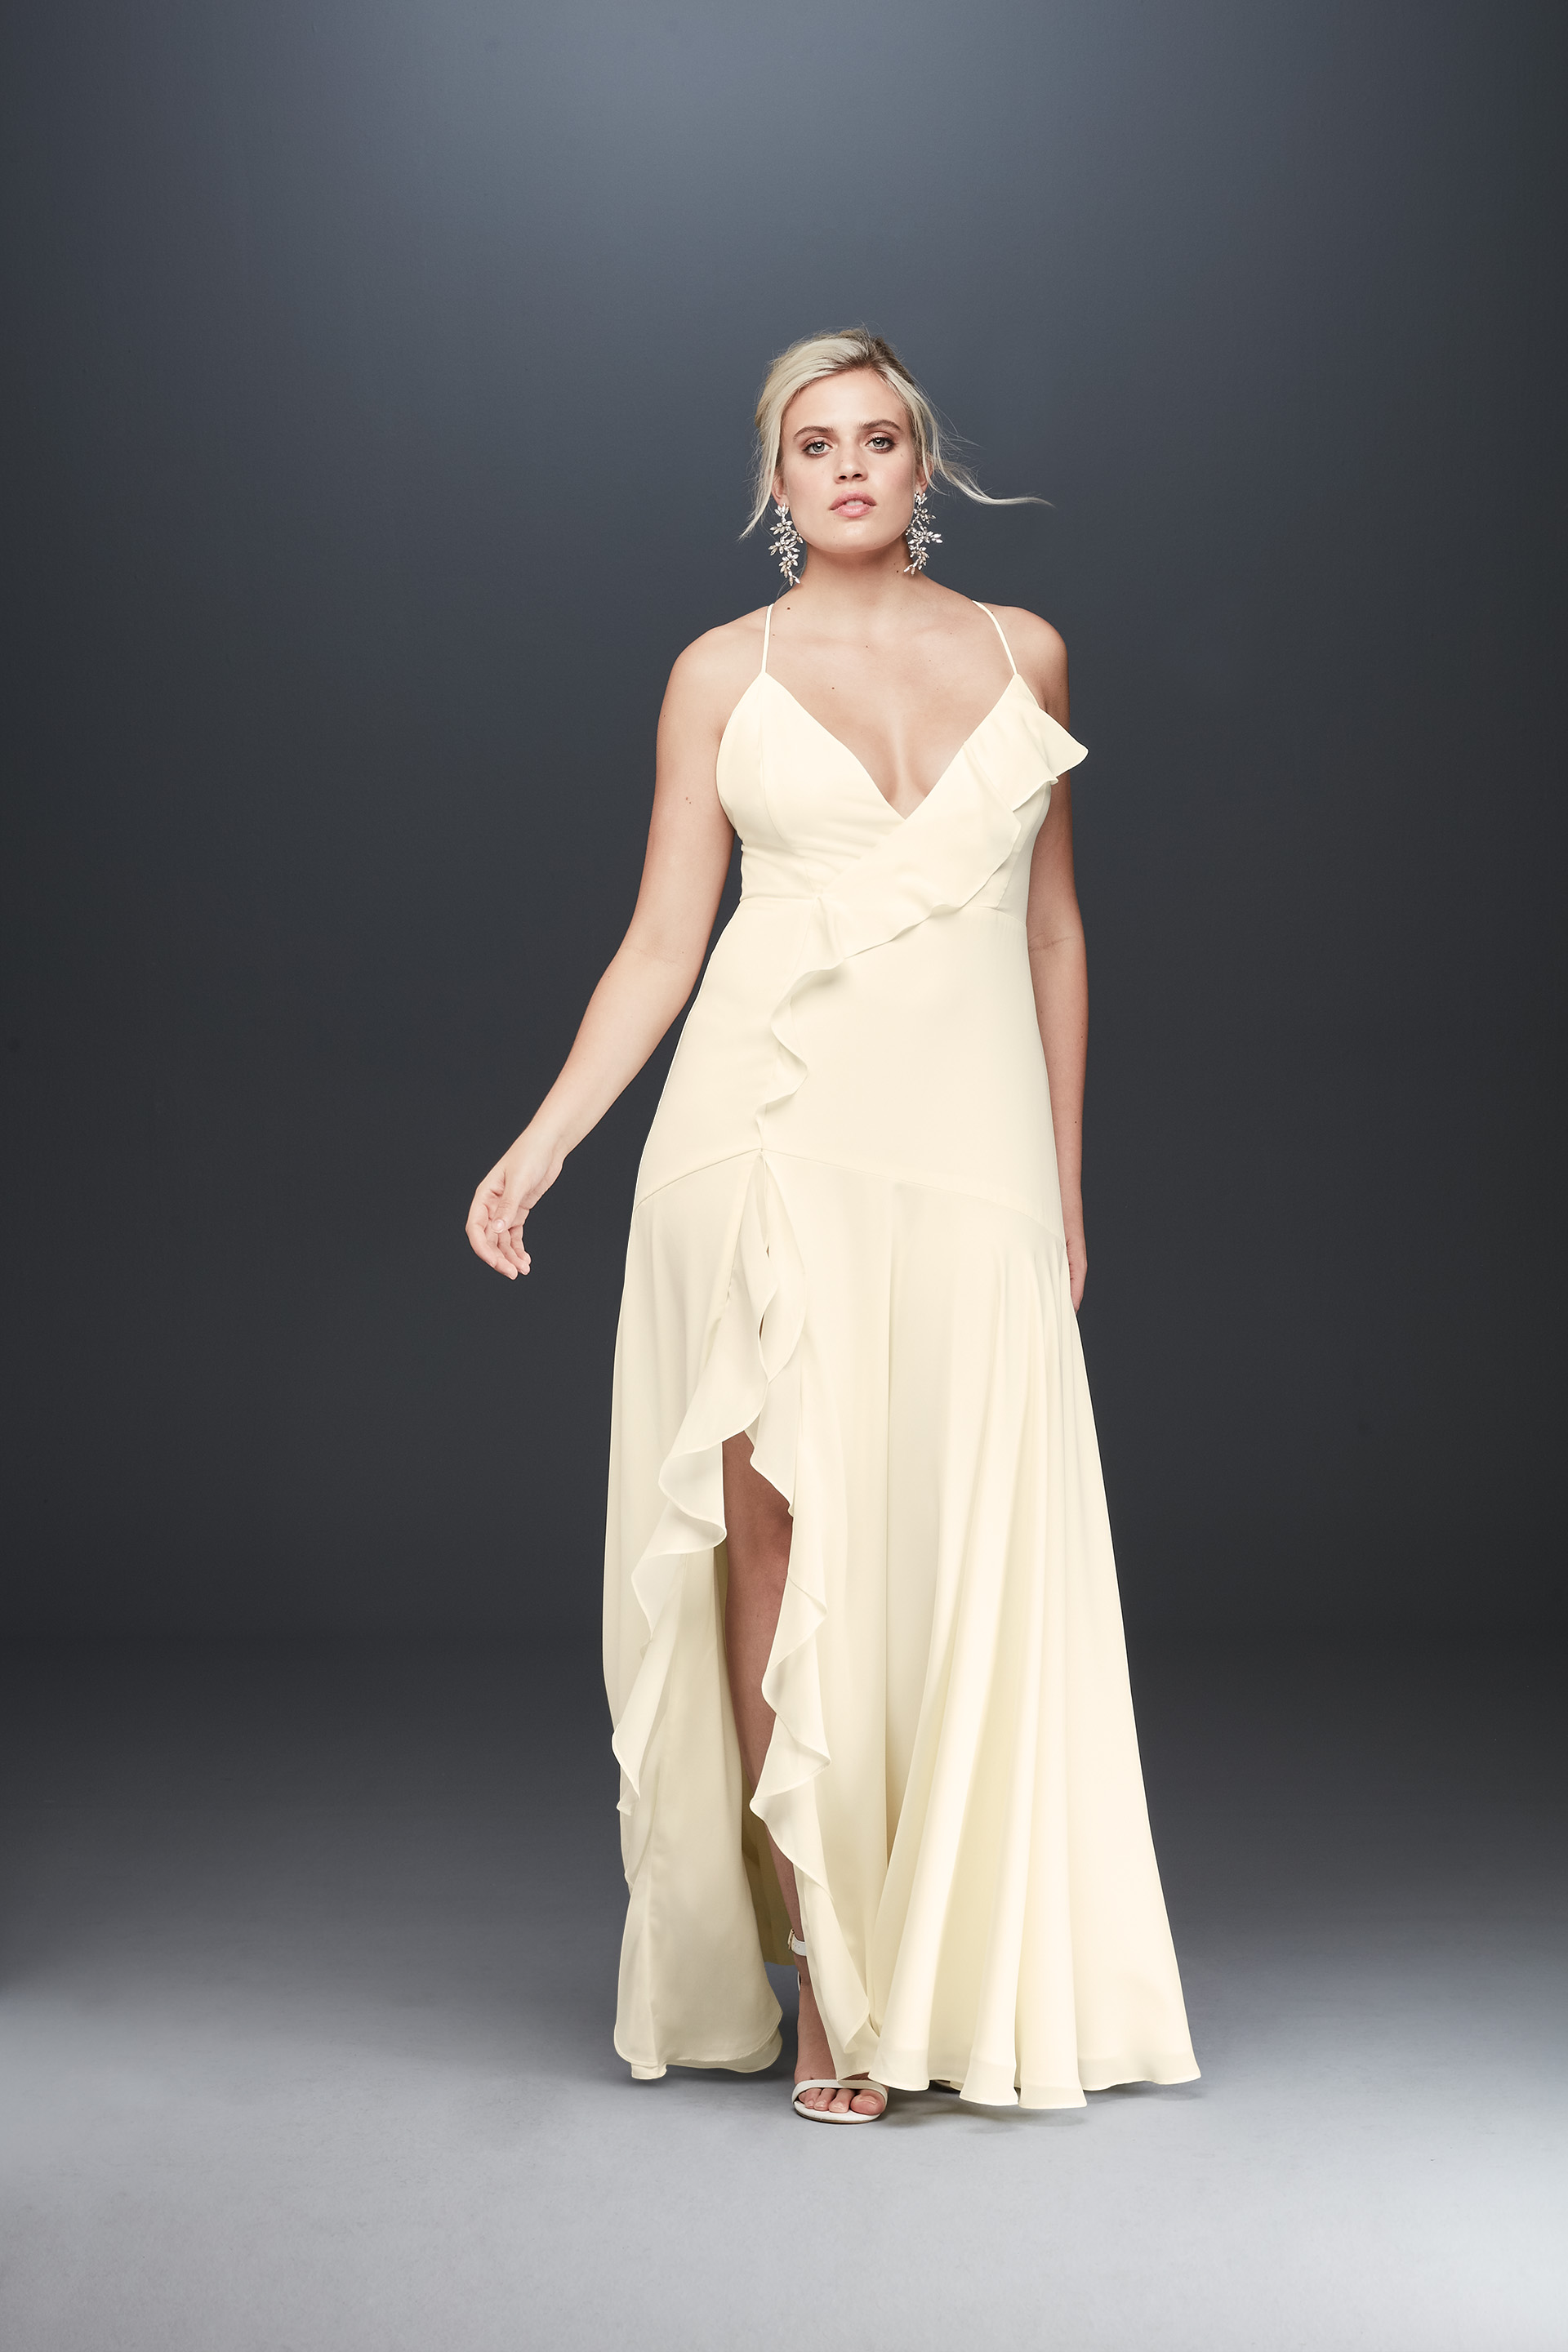 Bride in spaghetti strap ruffled wedding dress from Fame & Partners x David's Bridal collection